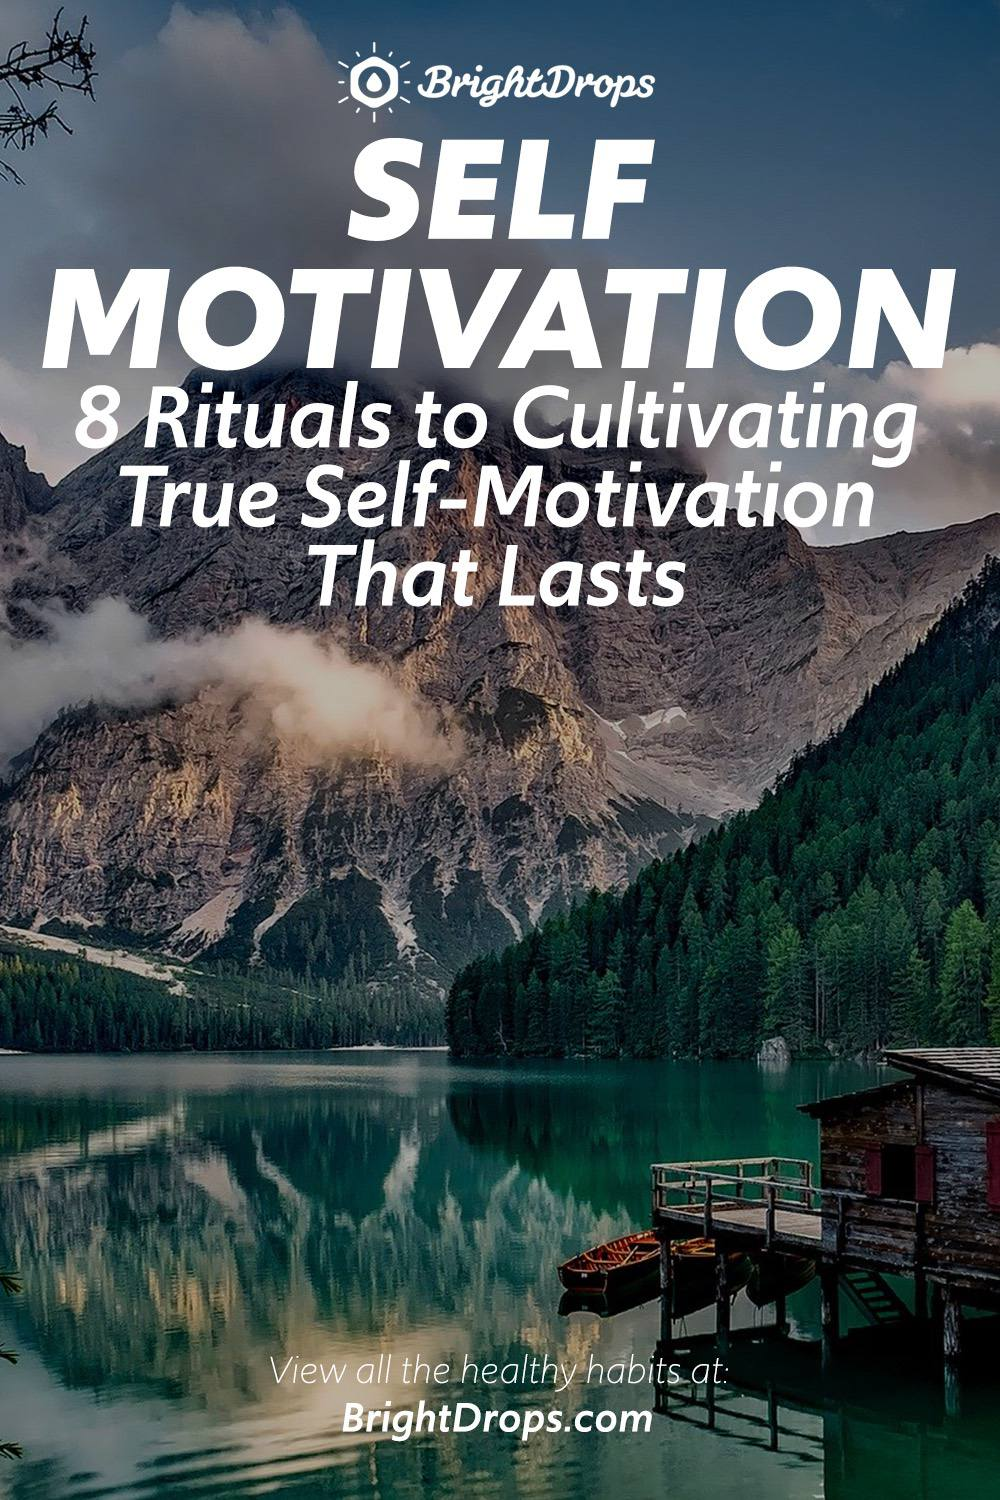 8 Rituals to Cultivating True Self-Motivation That Lasts